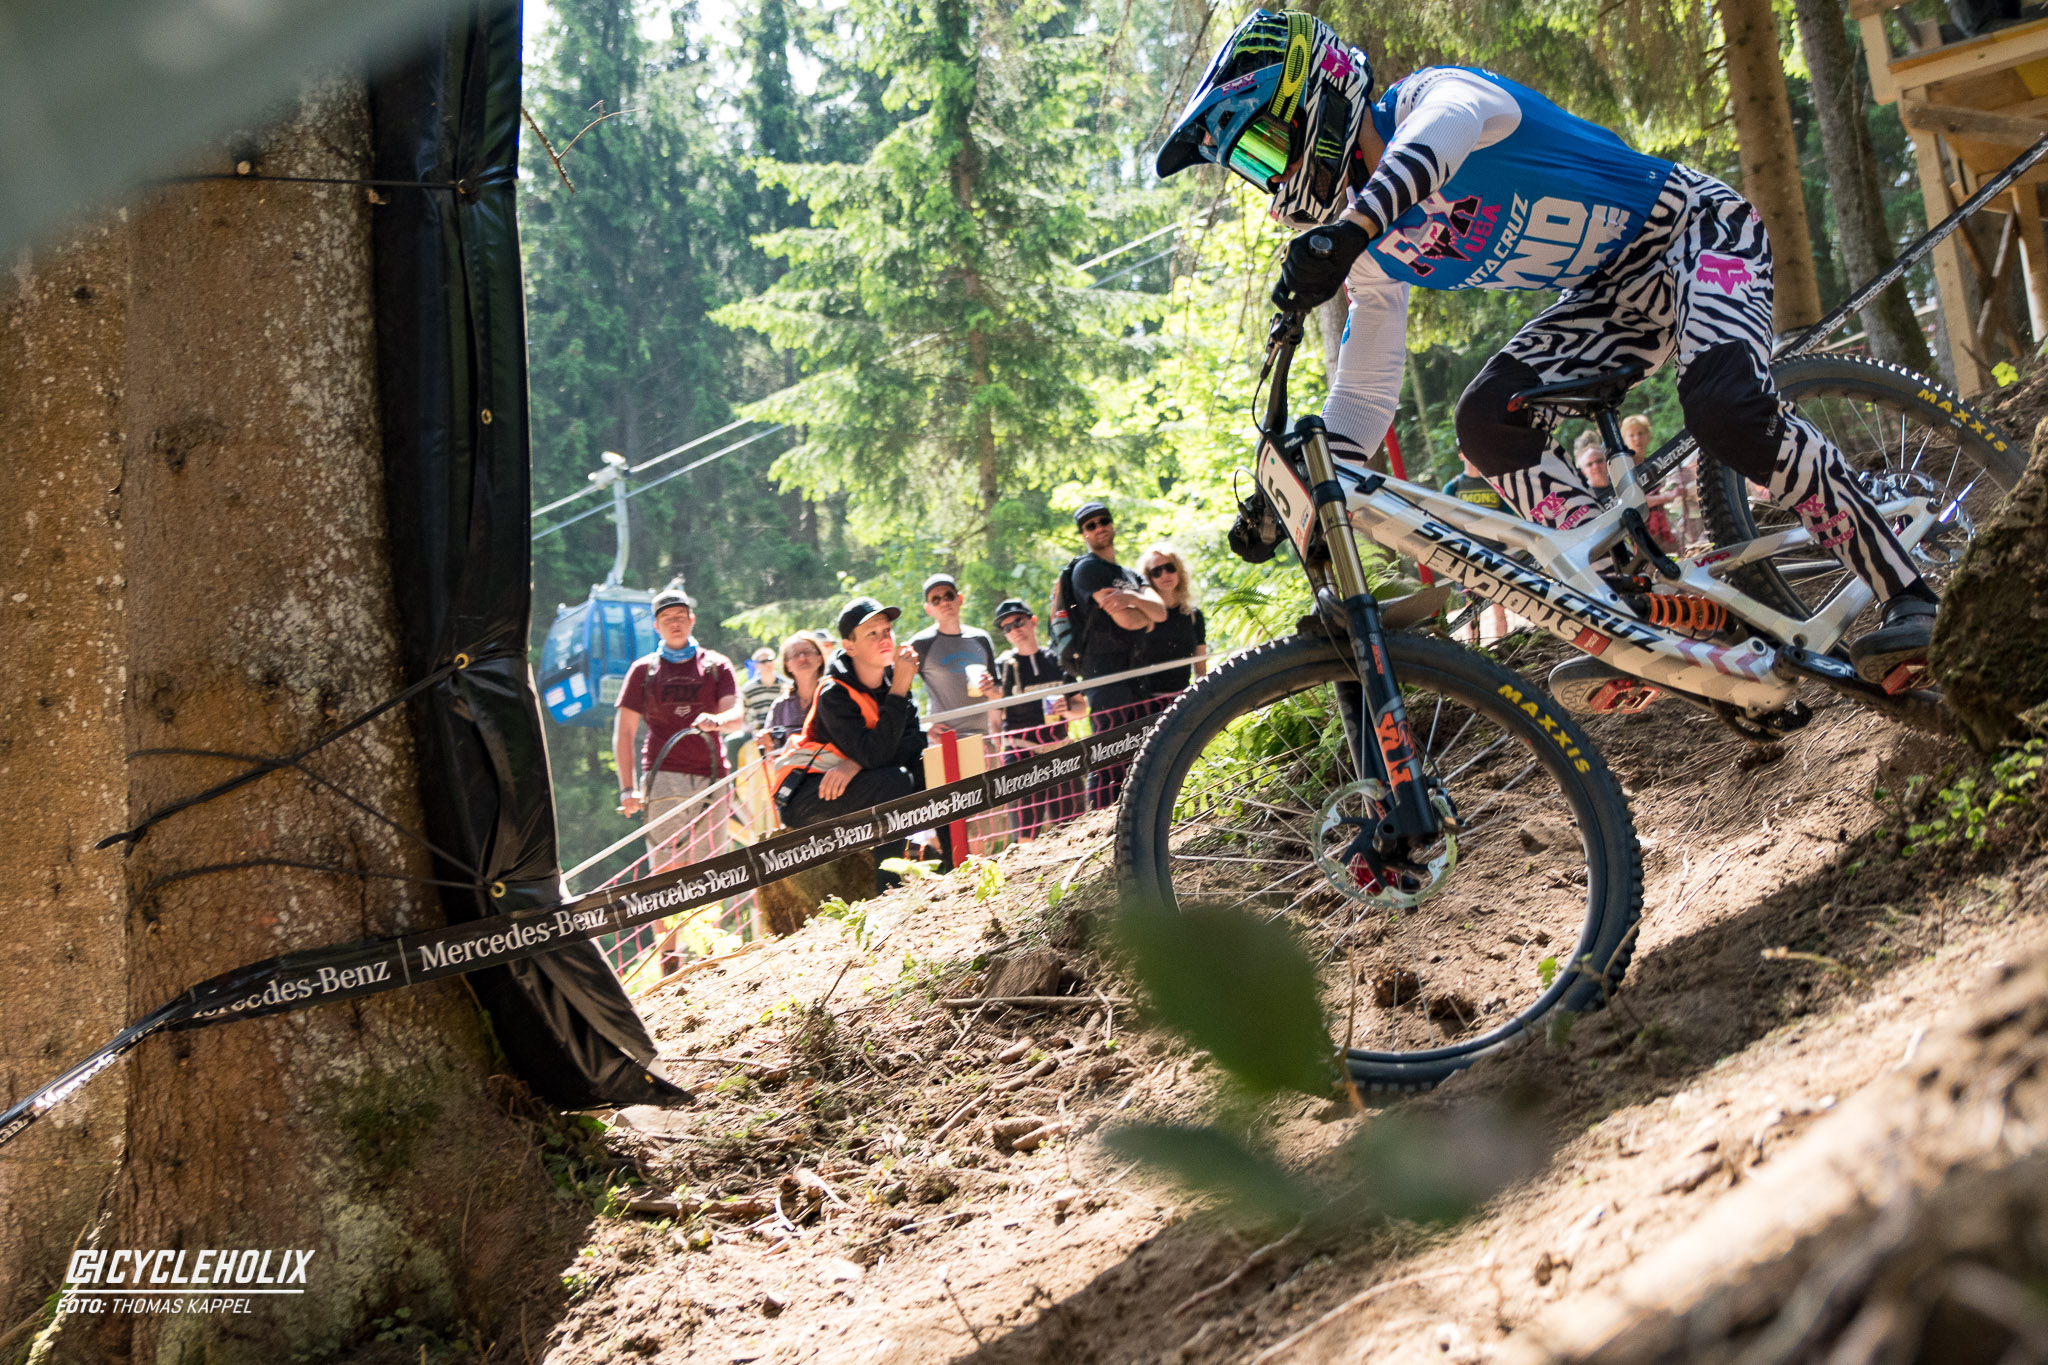 2019 Downhill Worldcup Leogang Finale Action 8